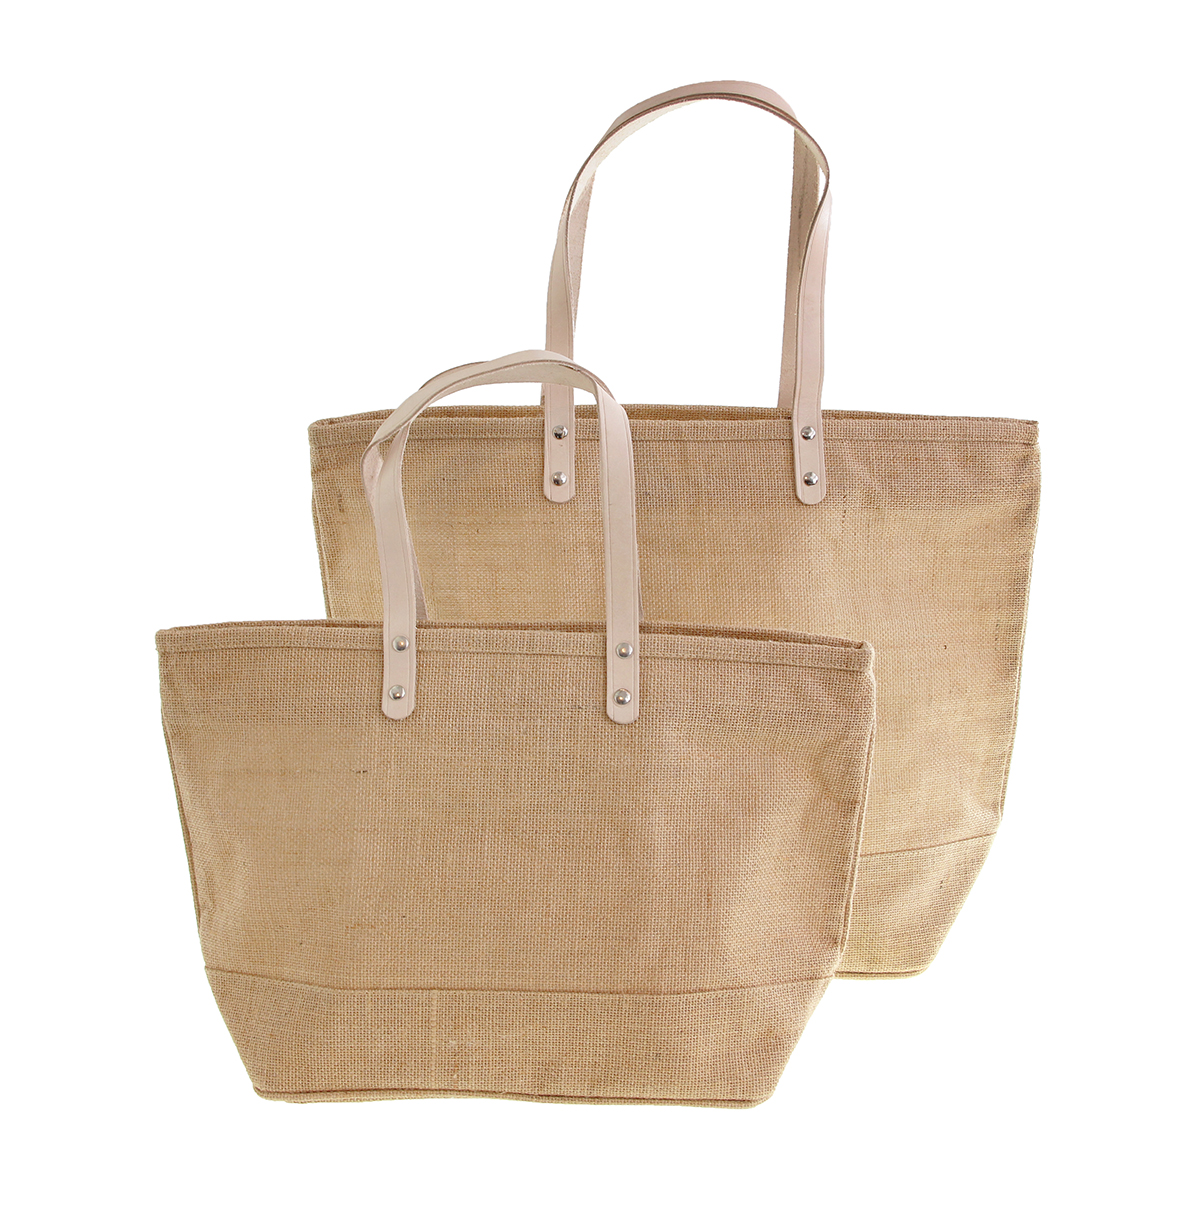 Jute Totes with Leather Handles